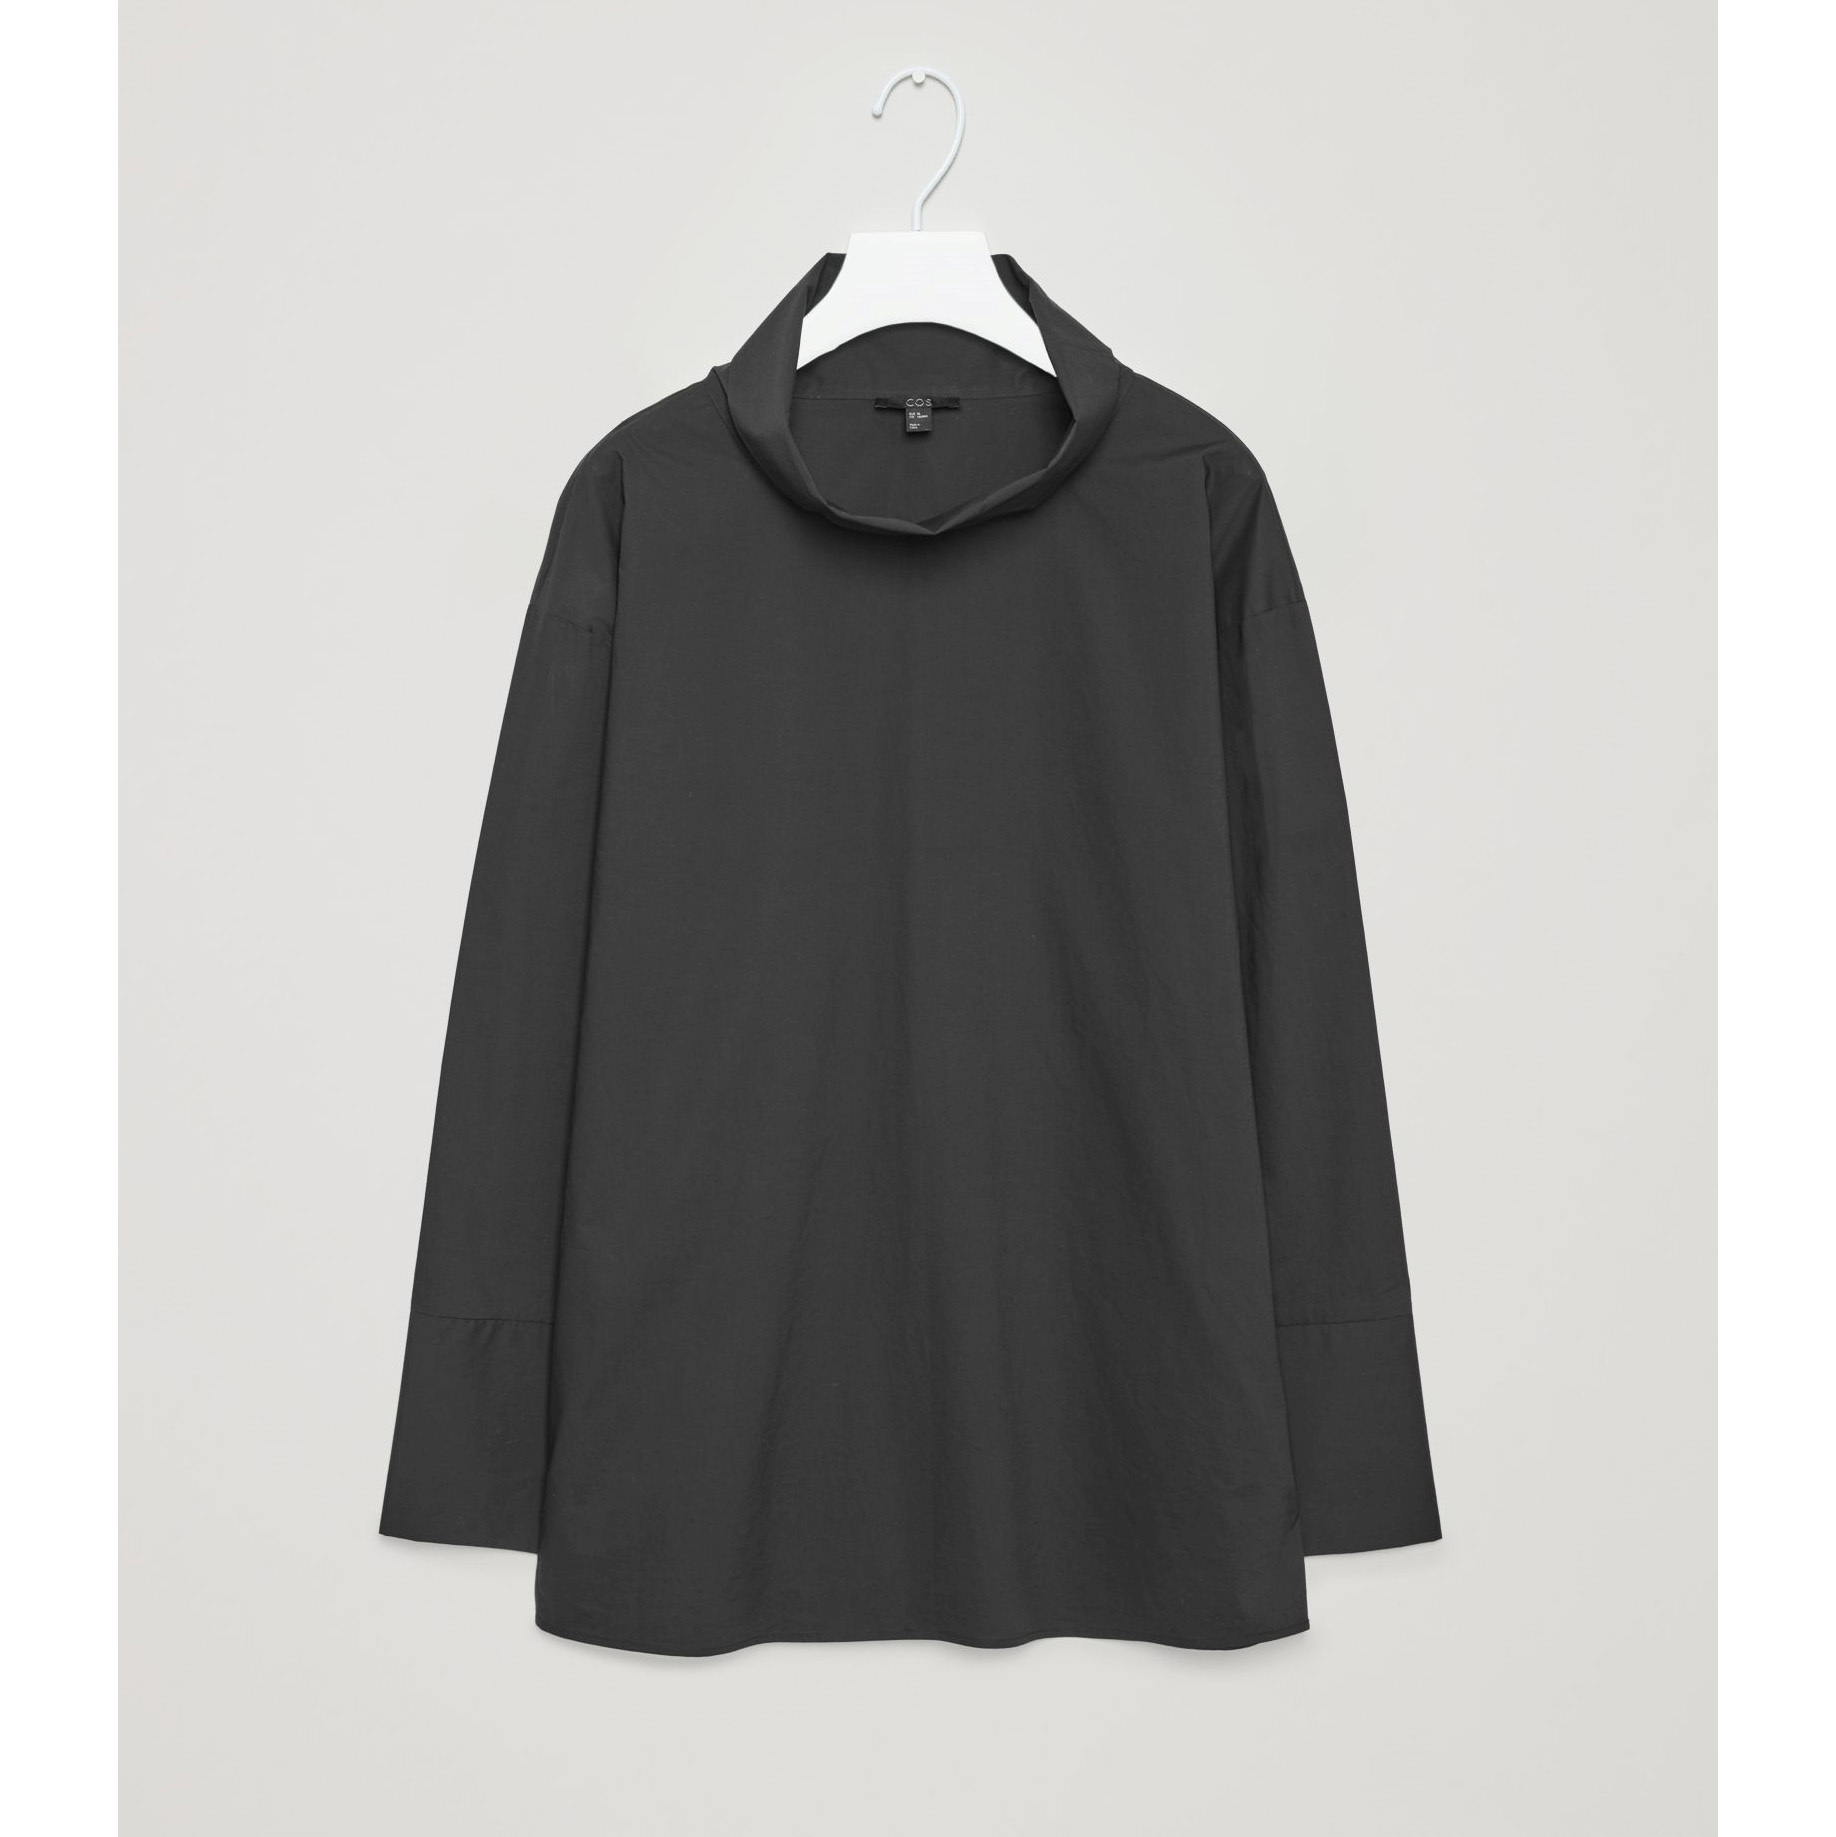 COS☆TOP WITH FOLDED NECKLINE / black